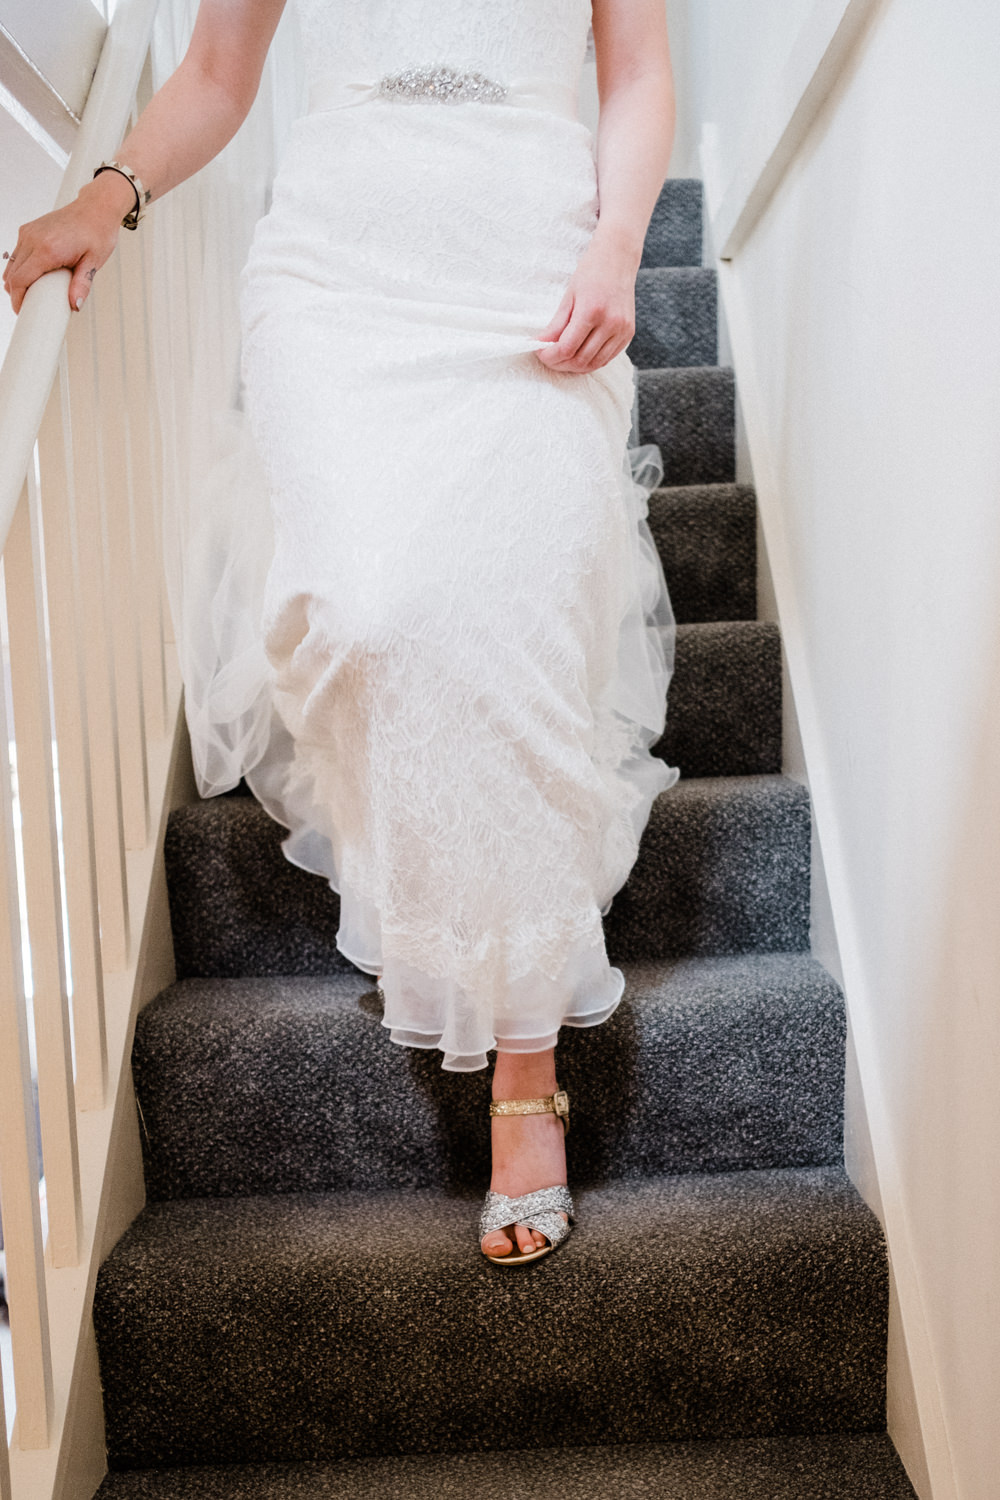 120-here-comes-the-bride-essex-wedding.JPG